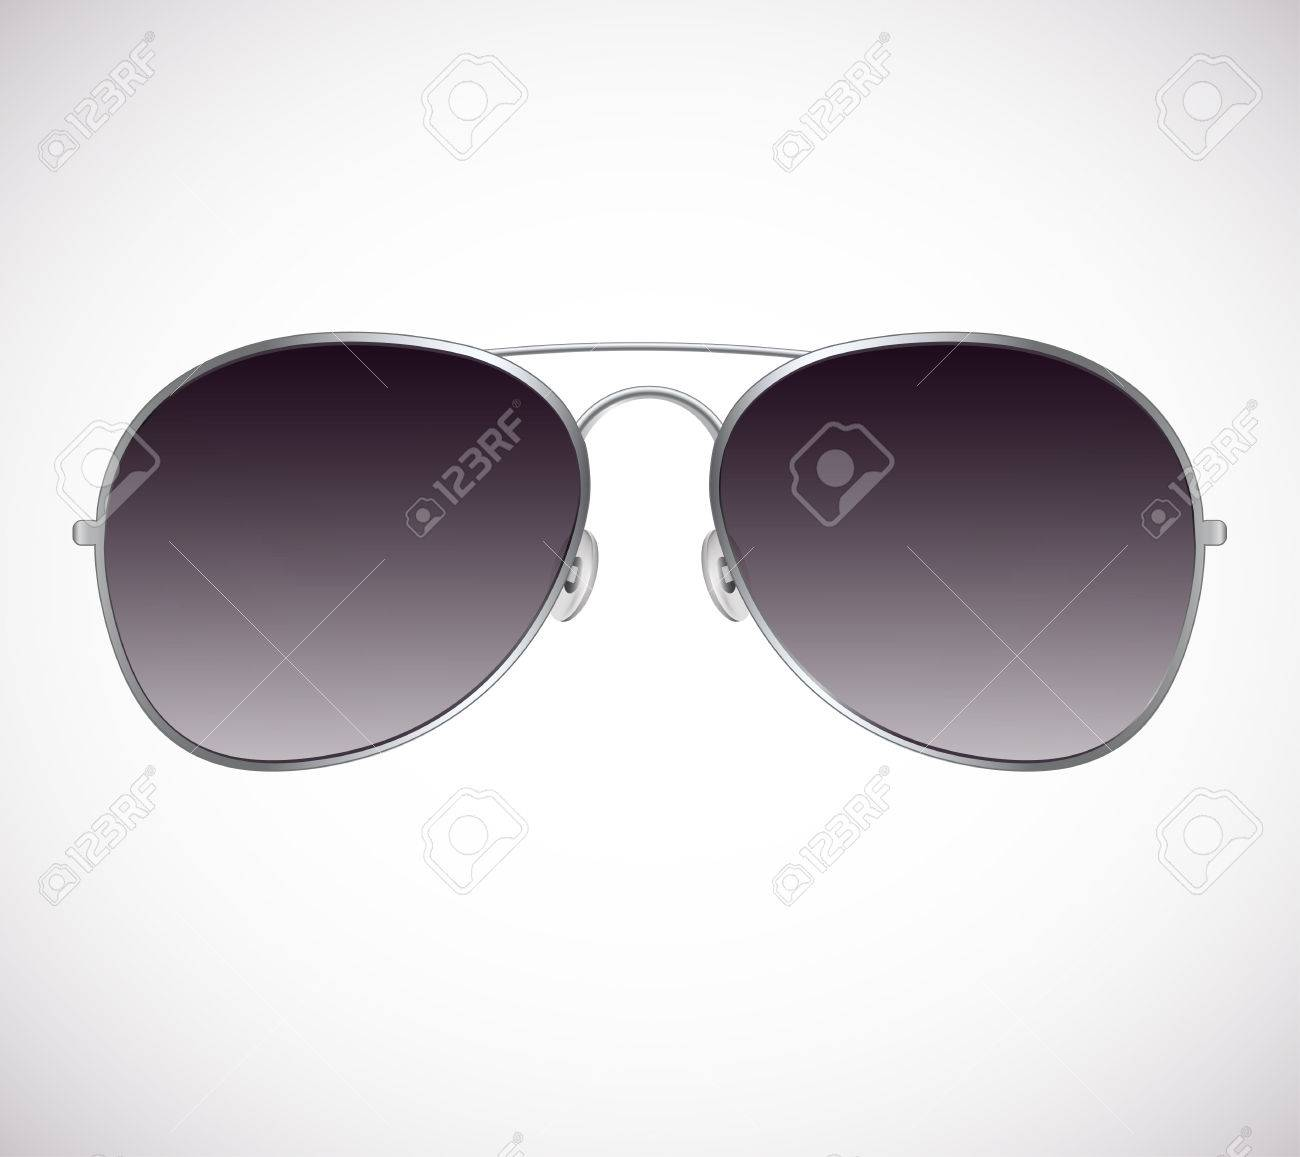 21d1f005f51f1 Aviator Sunglasses Illustration Background Royalty Free Cliparts ...